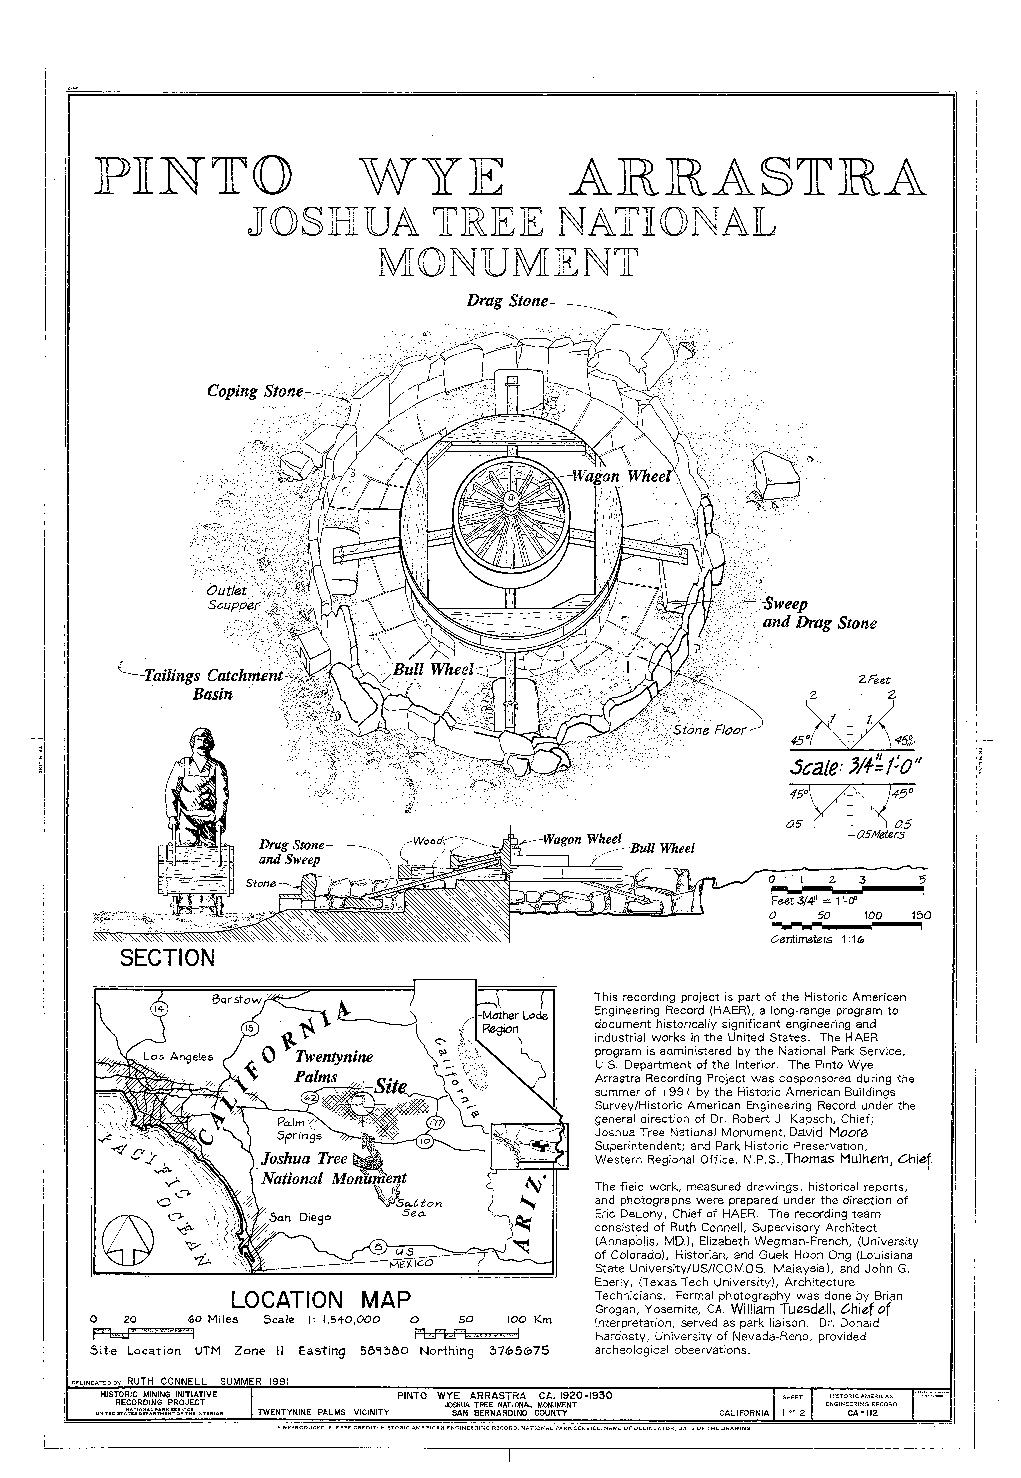 Credit: Historic American Engineering Record, National Park Service, delineated by Ruth Connell, summer 1991.